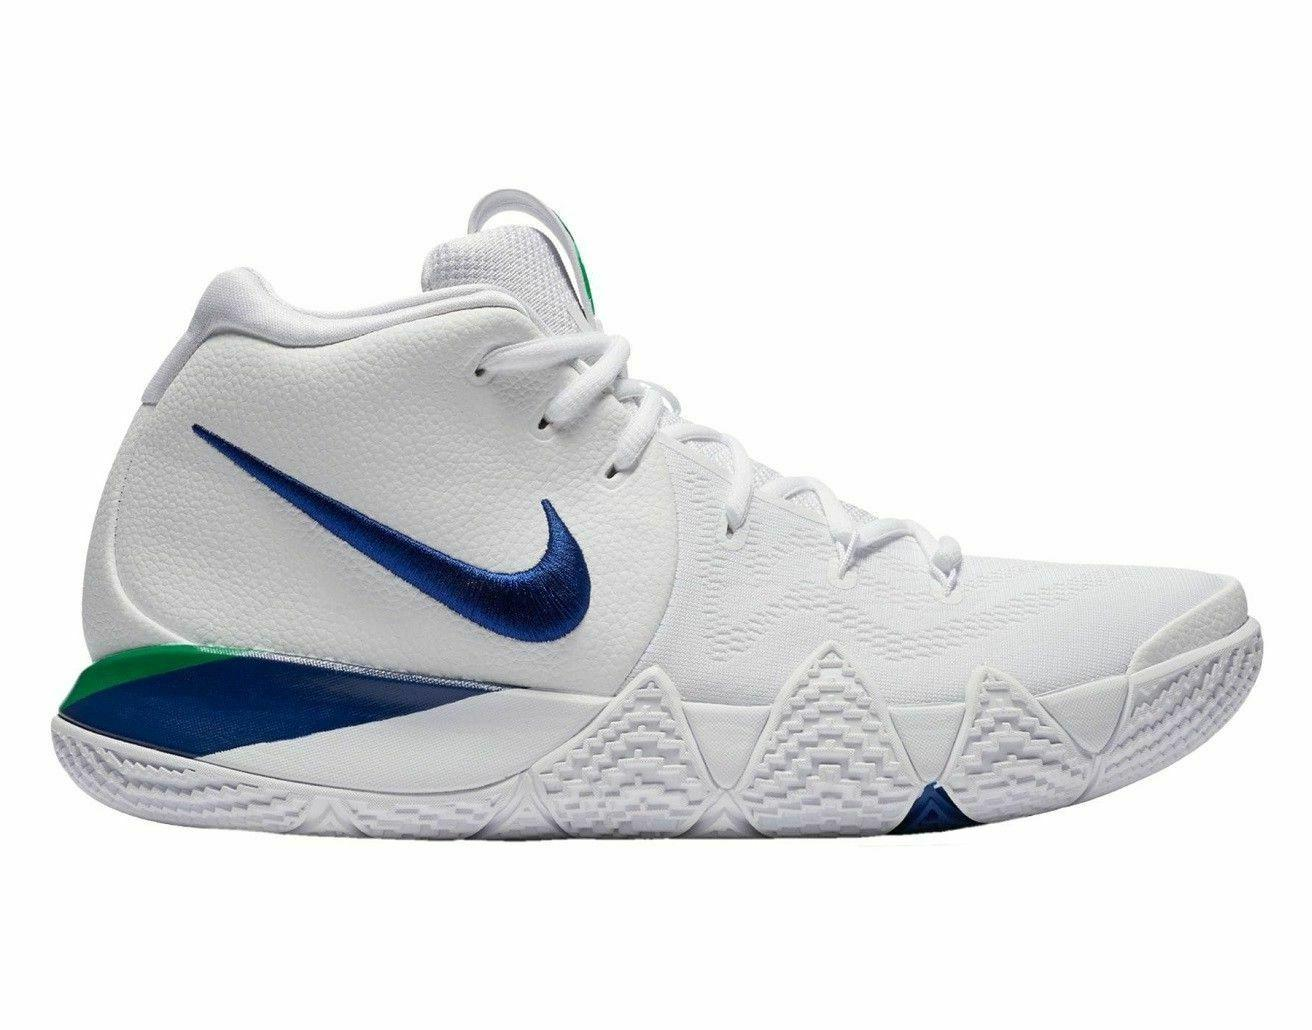 kyrie 4 mens basketball shoes 943806 103